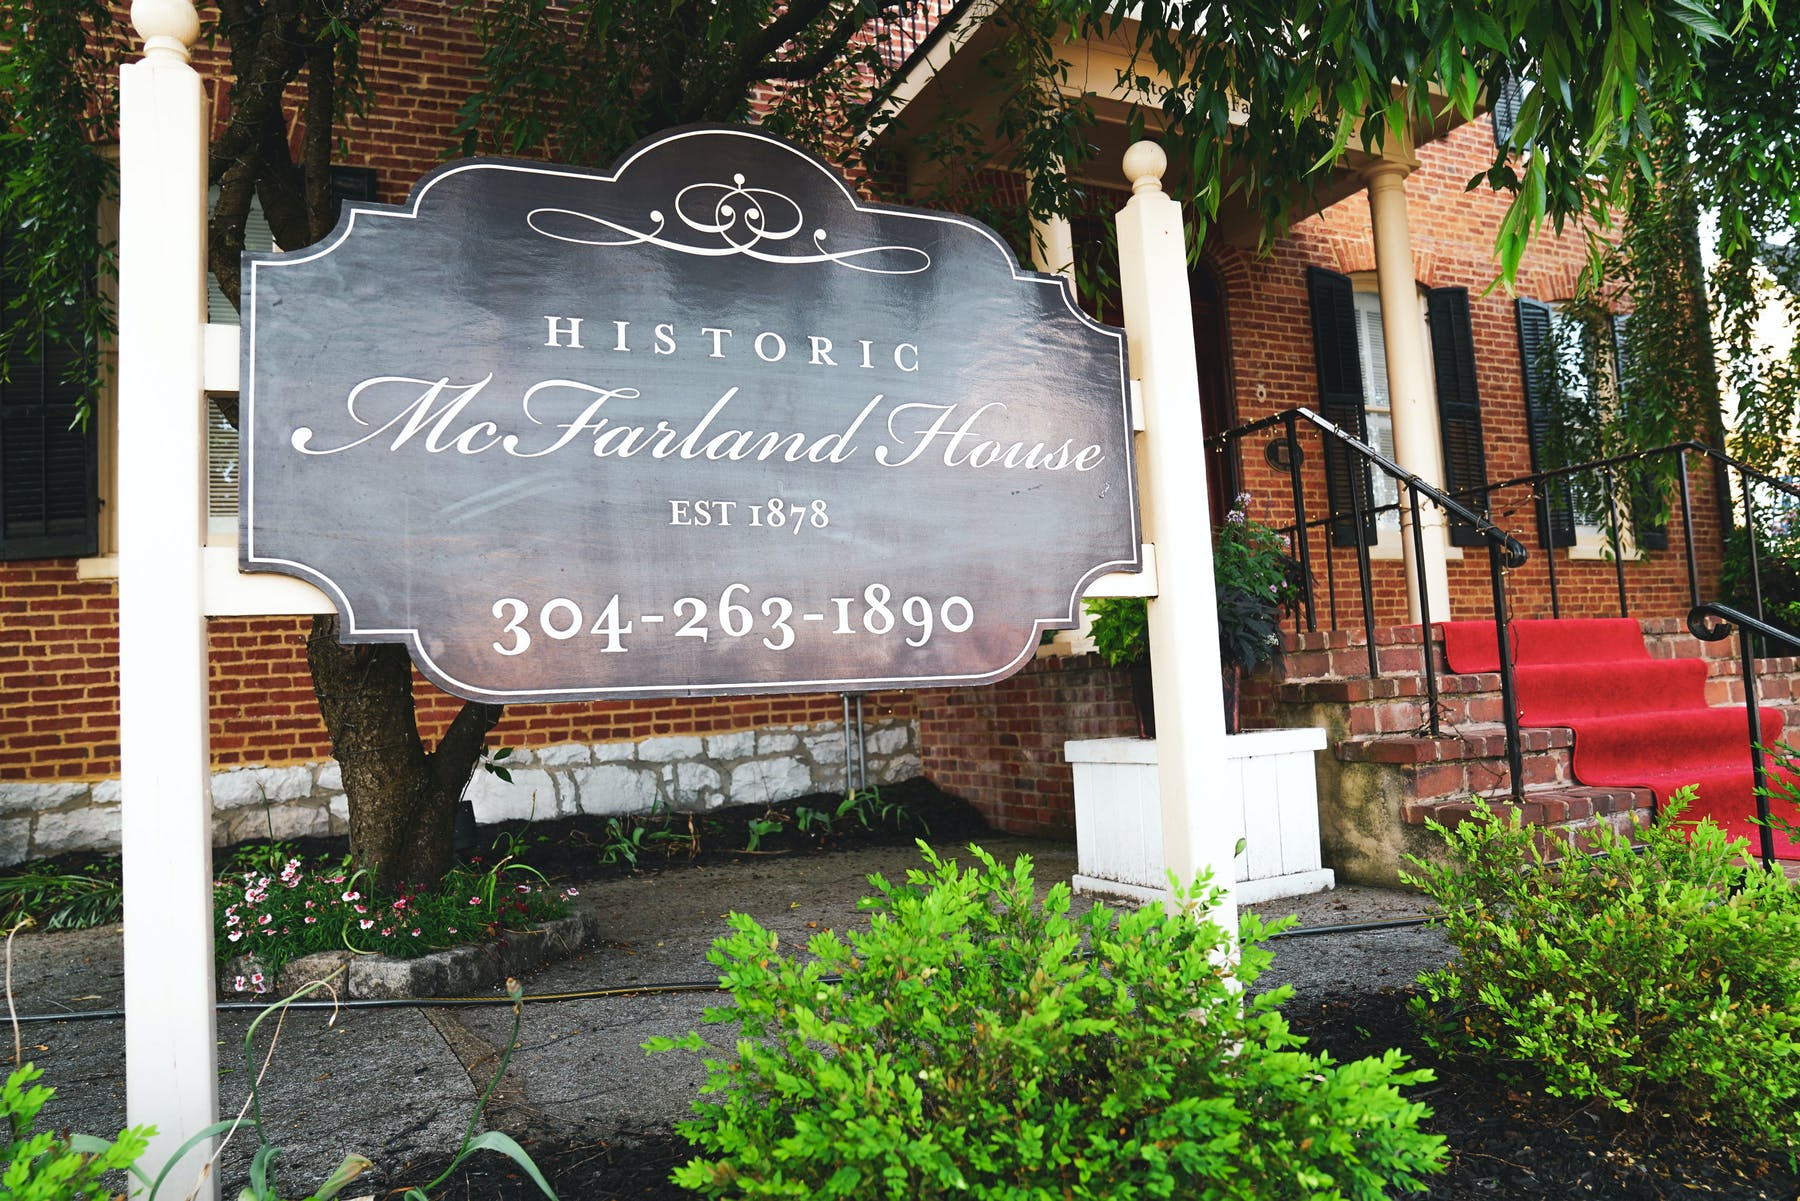 a close up of the Historic McFarland House sign